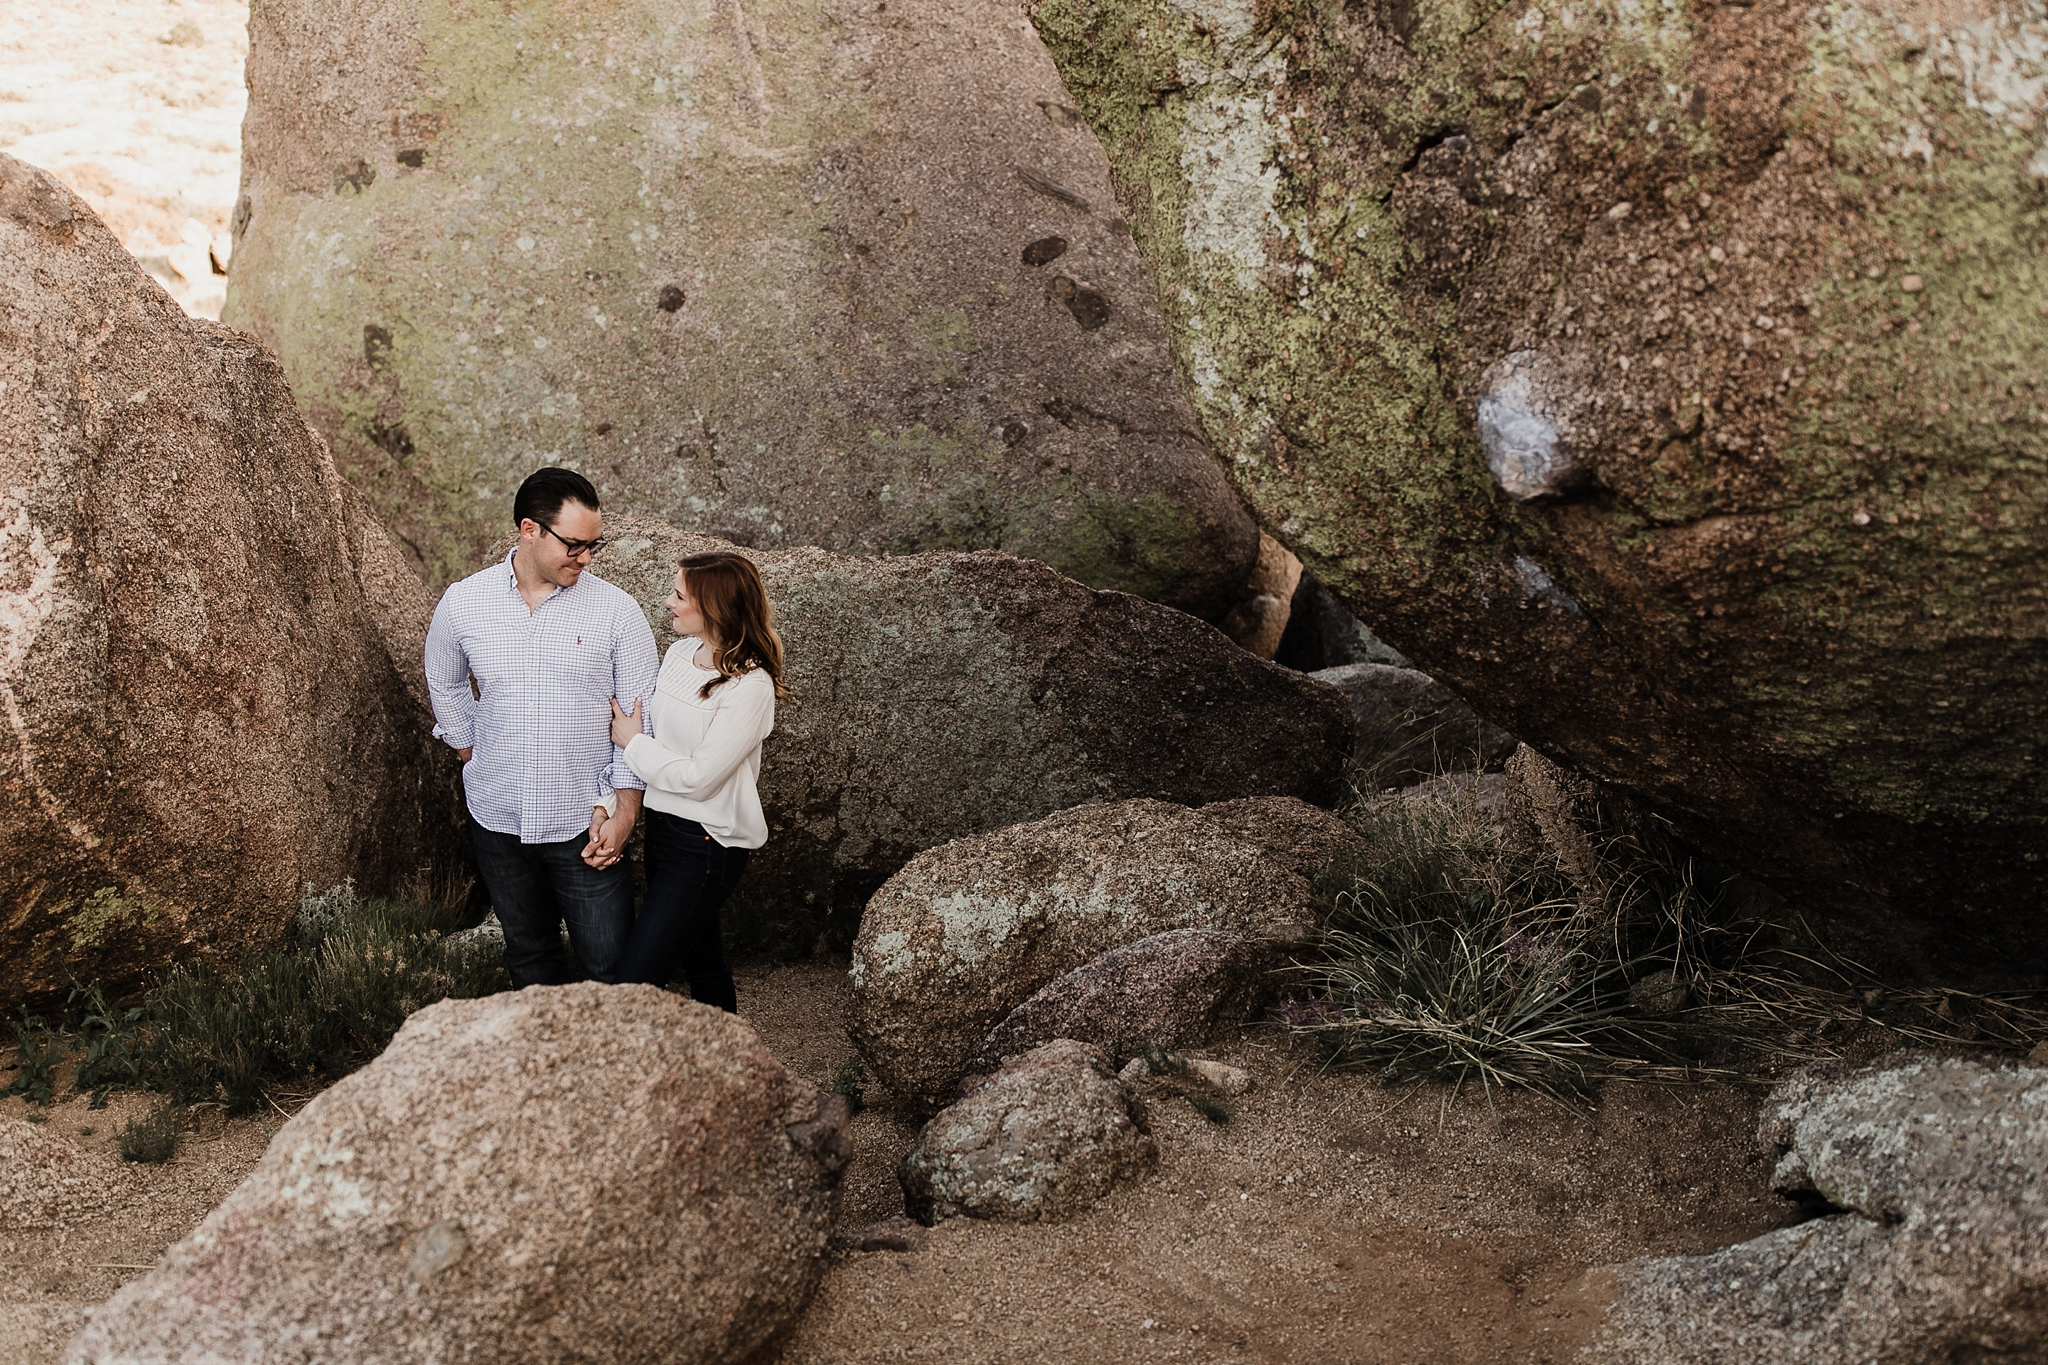 Alicia+lucia+photography+-+albuquerque+wedding+photographer+-+santa+fe+wedding+photography+-+new+mexico+wedding+photographer+-+new+mexico+wedding+-+new+mexico+engagement+-+engagement+photographer+-+mountain+engagement+-+desert+engagement_0008.jpg